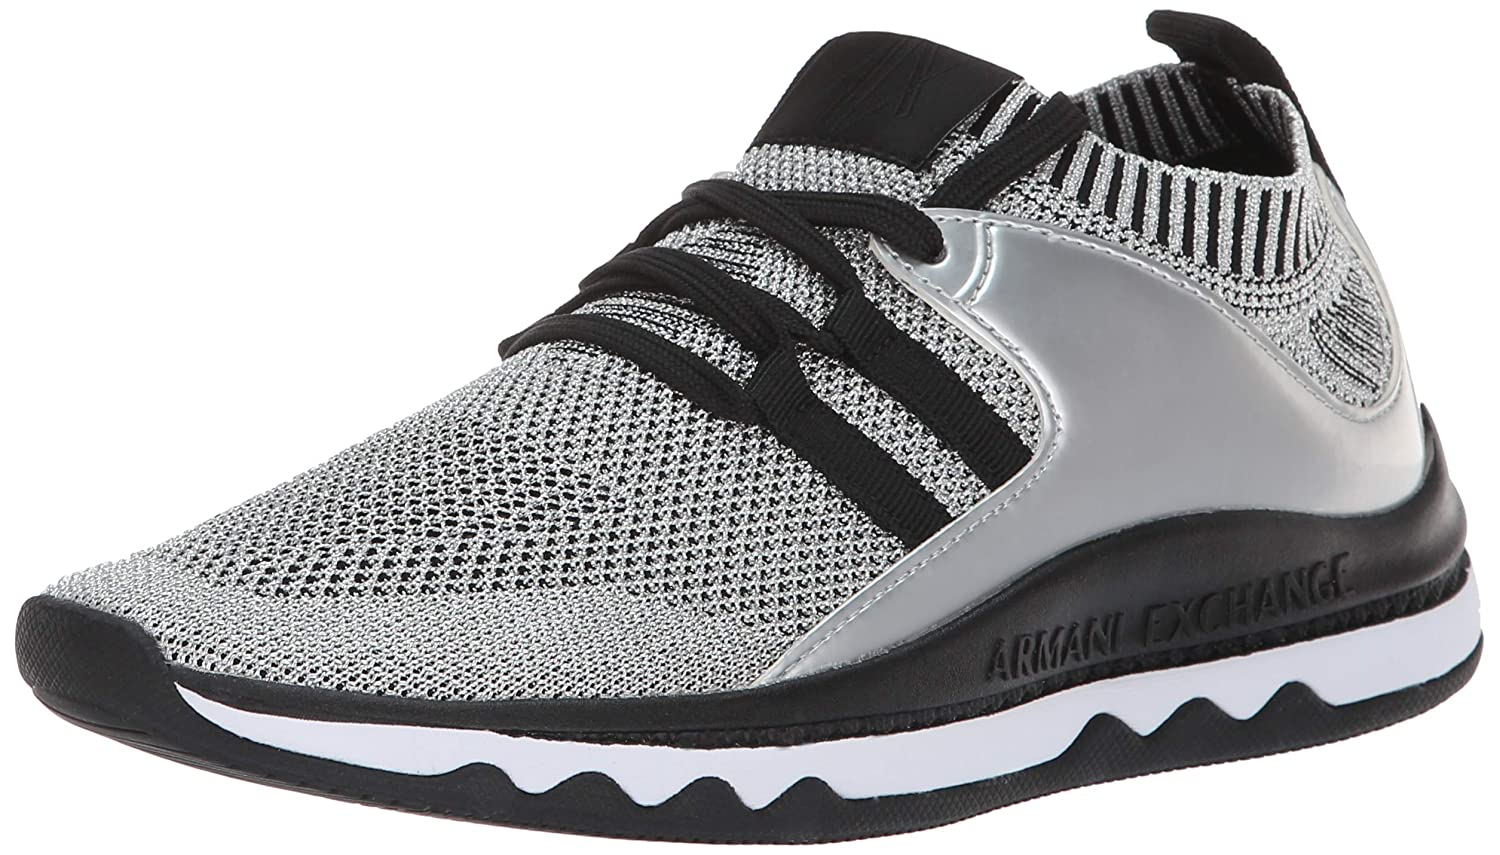 Armani Exchange Low-Top Sneaker, Zapatillas para Mujer